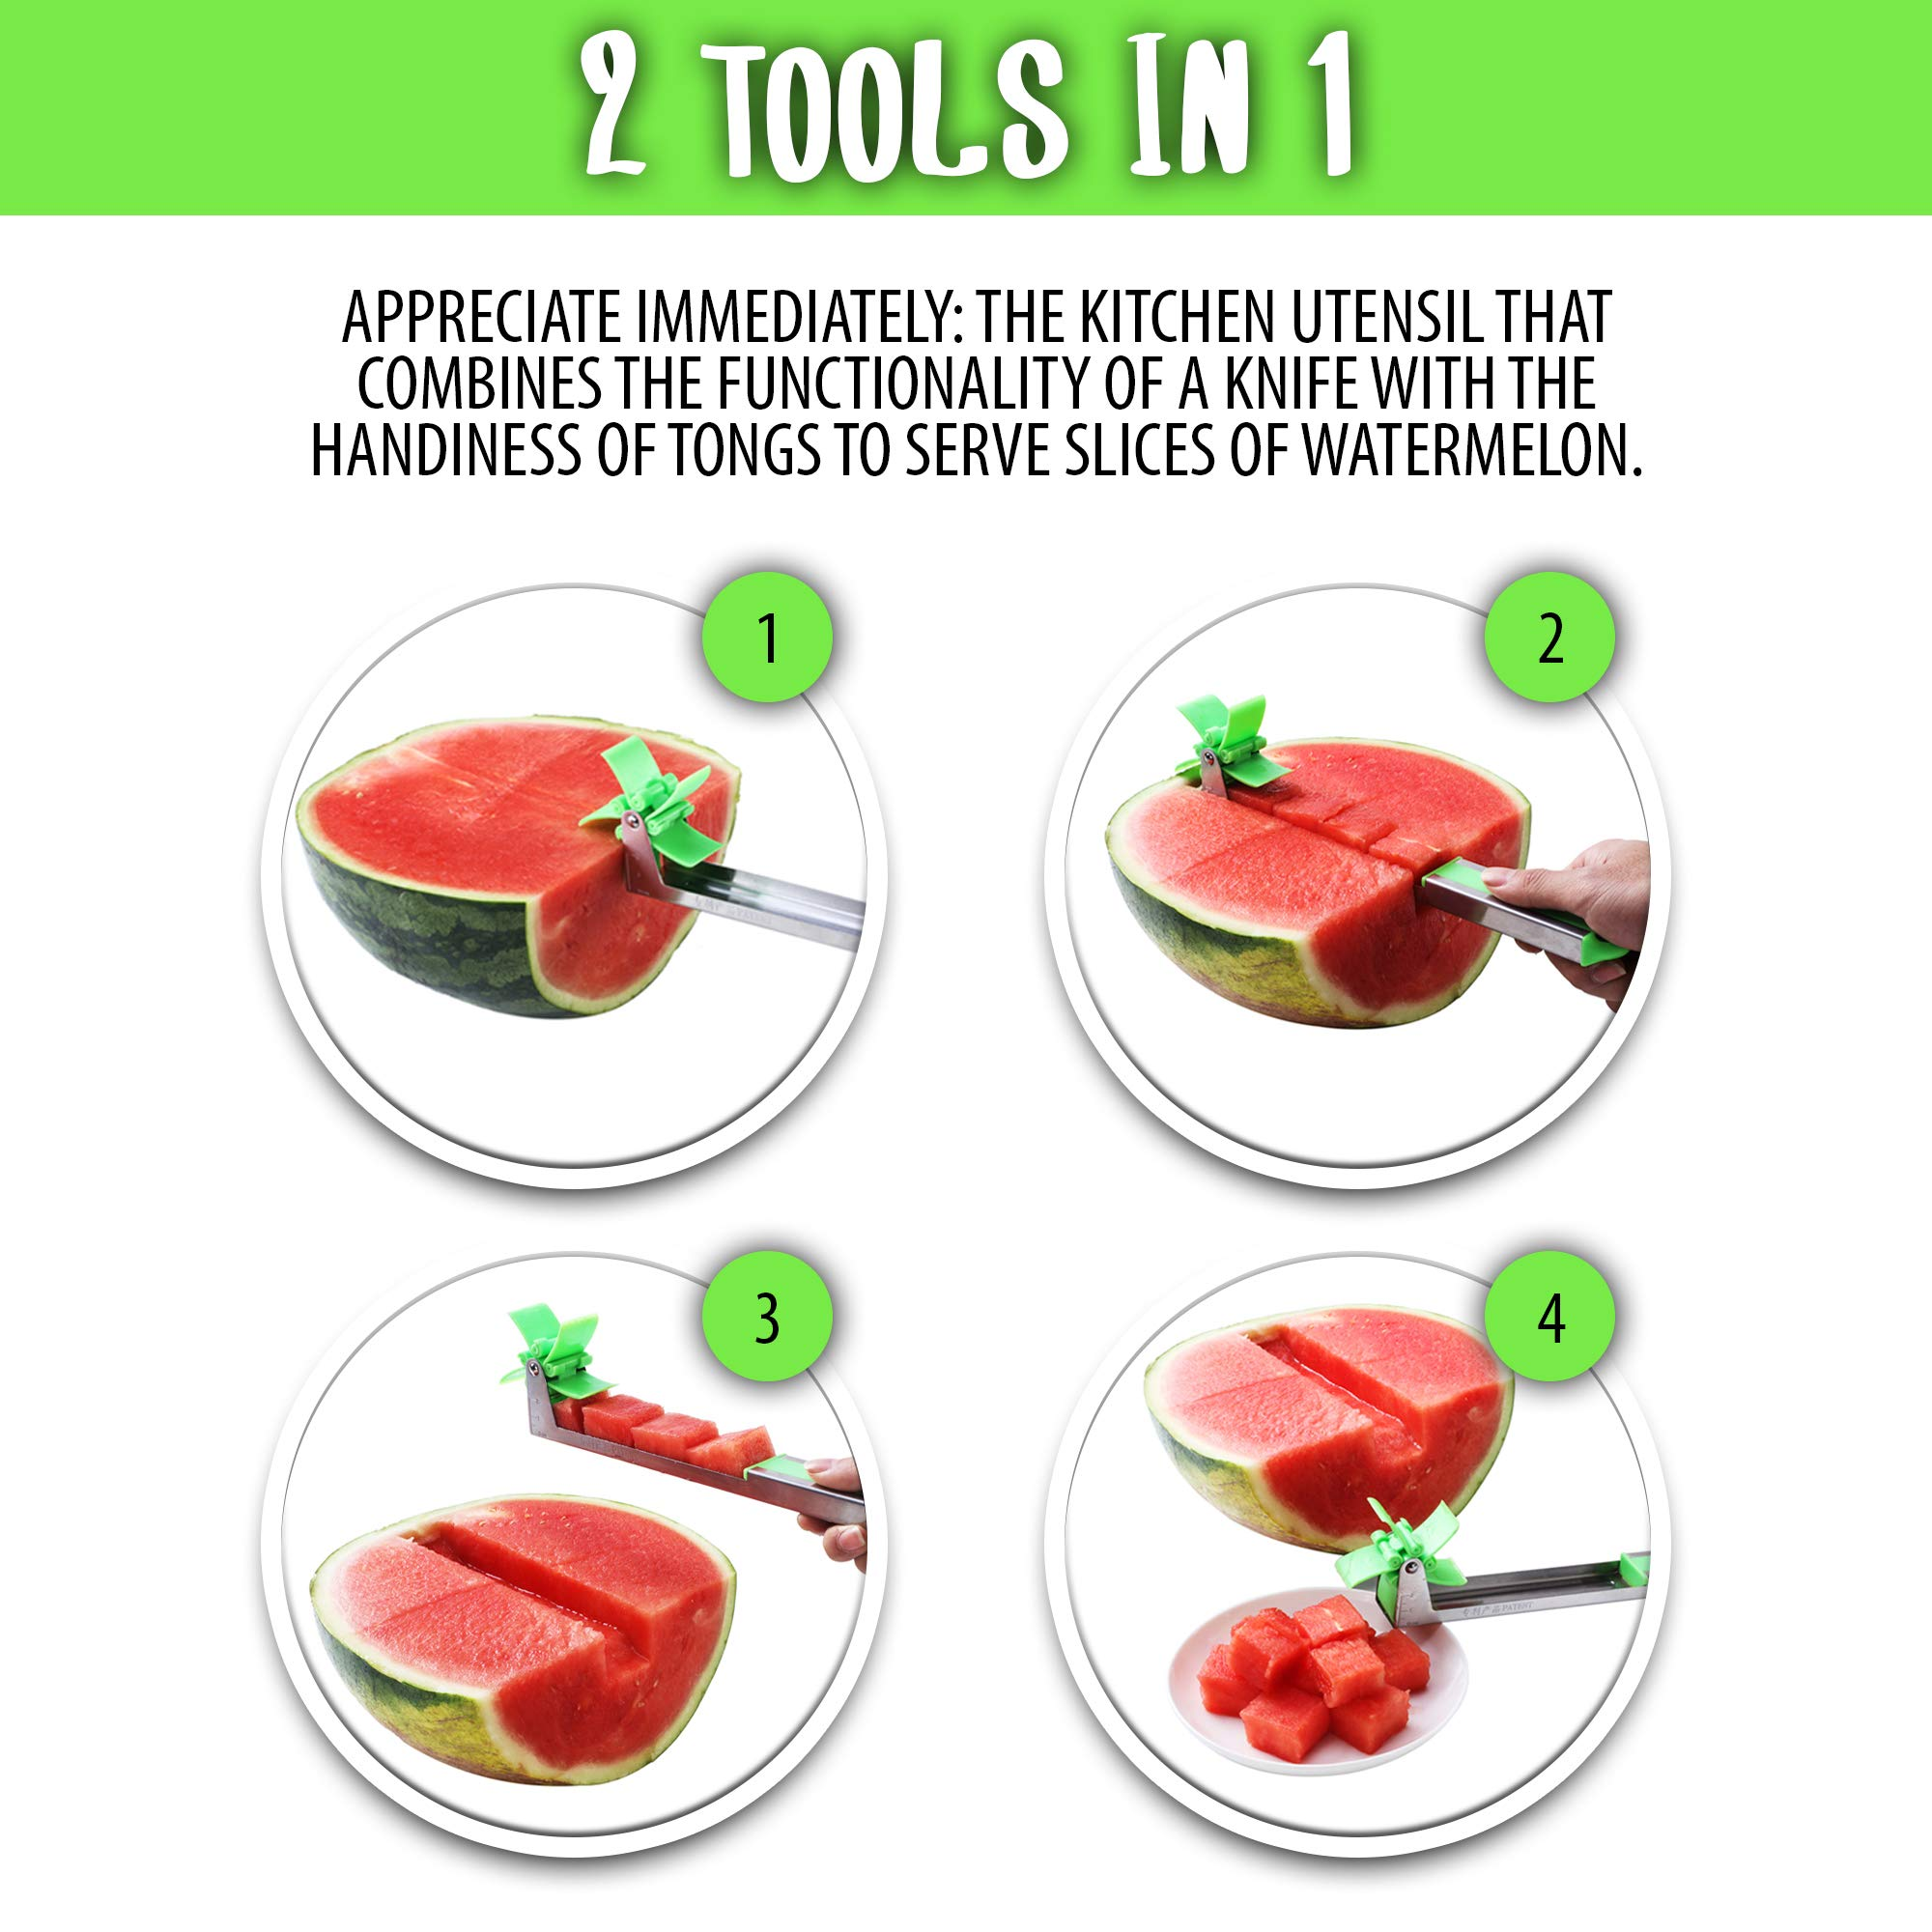 EZ Melon Stainless Steel Watermelon Slicer - Melon and Cantaloupe Fruit Slicer, Carver, Cutter, Knife - Carving and Cutting Tools for Home, Professional Restaurant Chefs - Easy Grip Kitchen Gadgets by Lux&Max (Image #2)